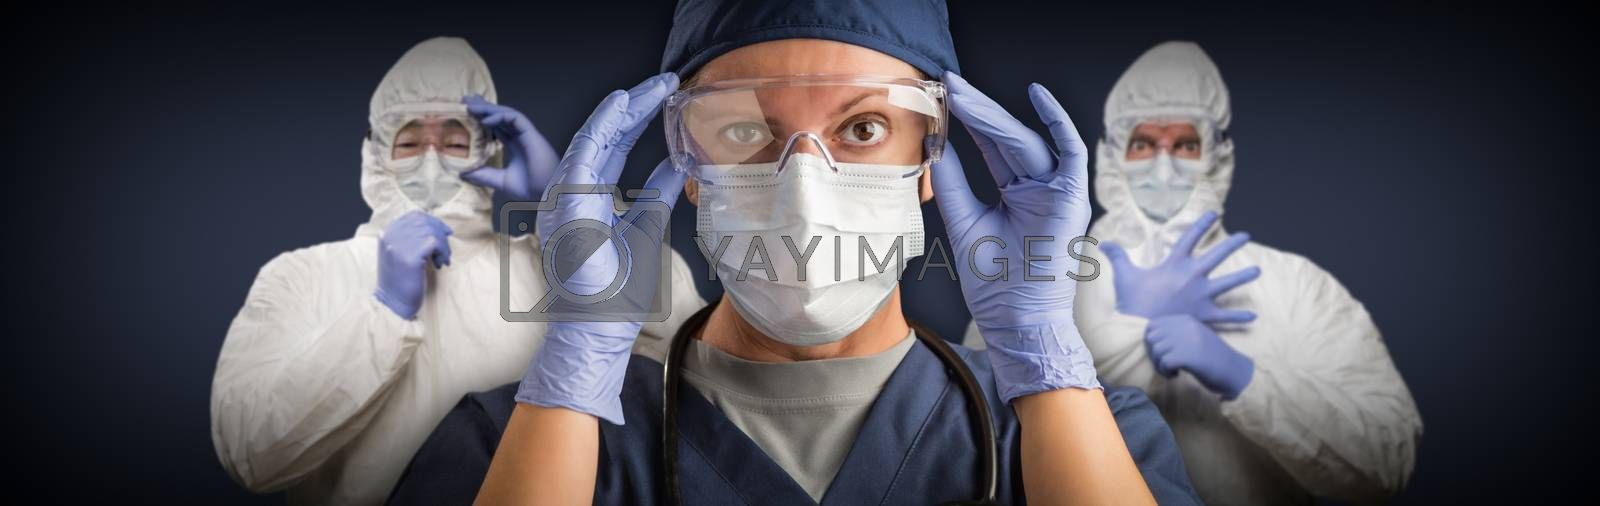 Team of Female and Male Doctors or Nurses Wearing Protective Medical Face Masks and Goggles Banner.